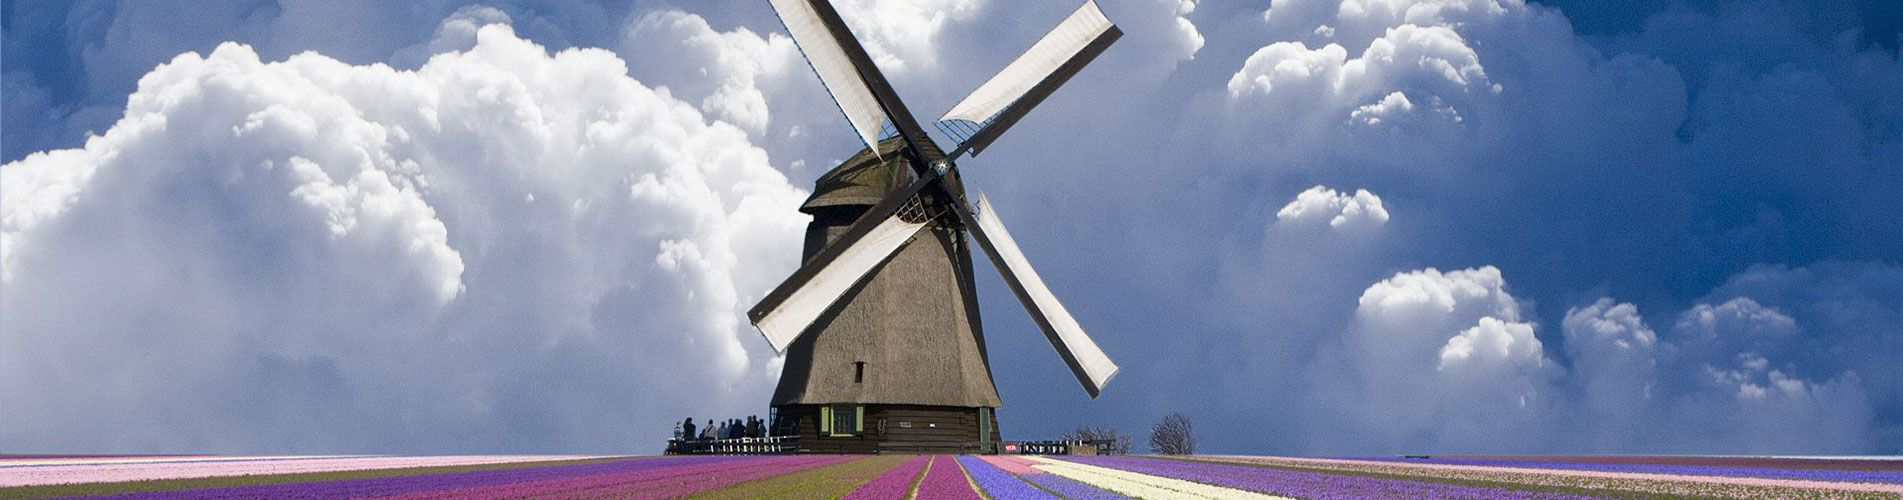 Windmill and Fields